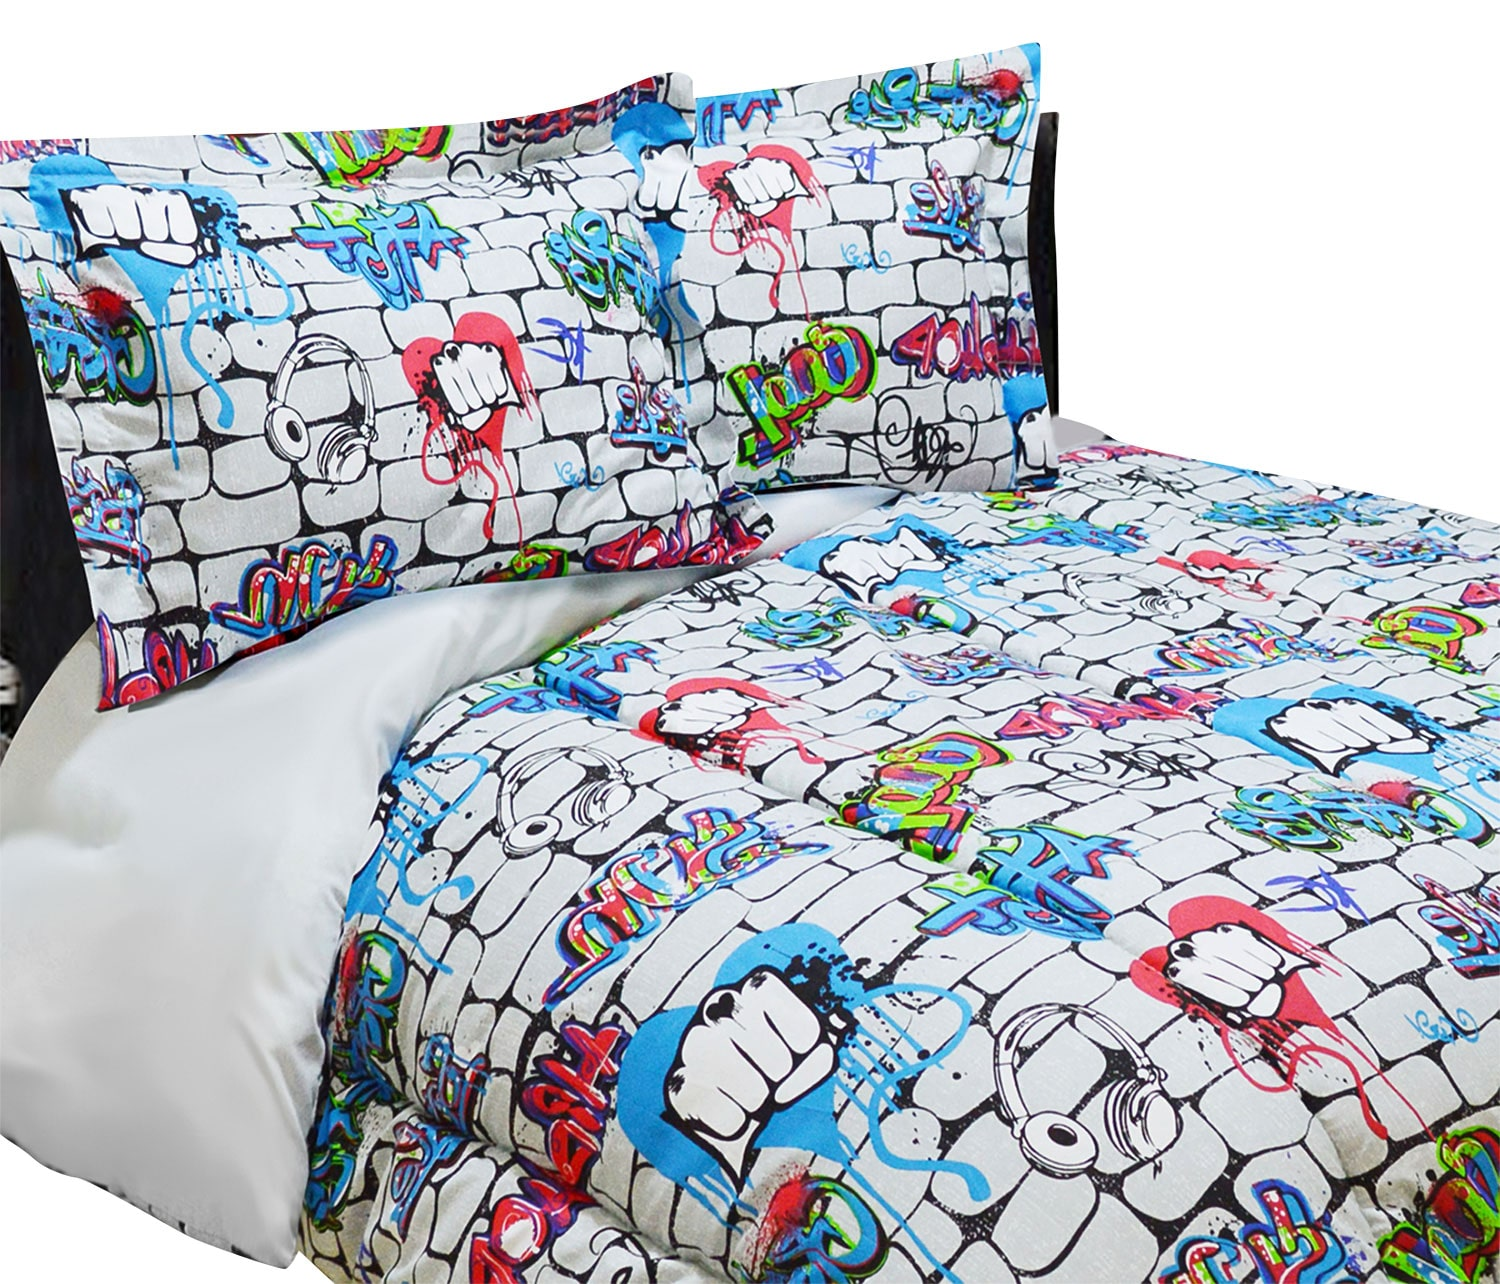 Mattresses and Bedding - Graffiti Wall 2-Piece Twin Comforter Set